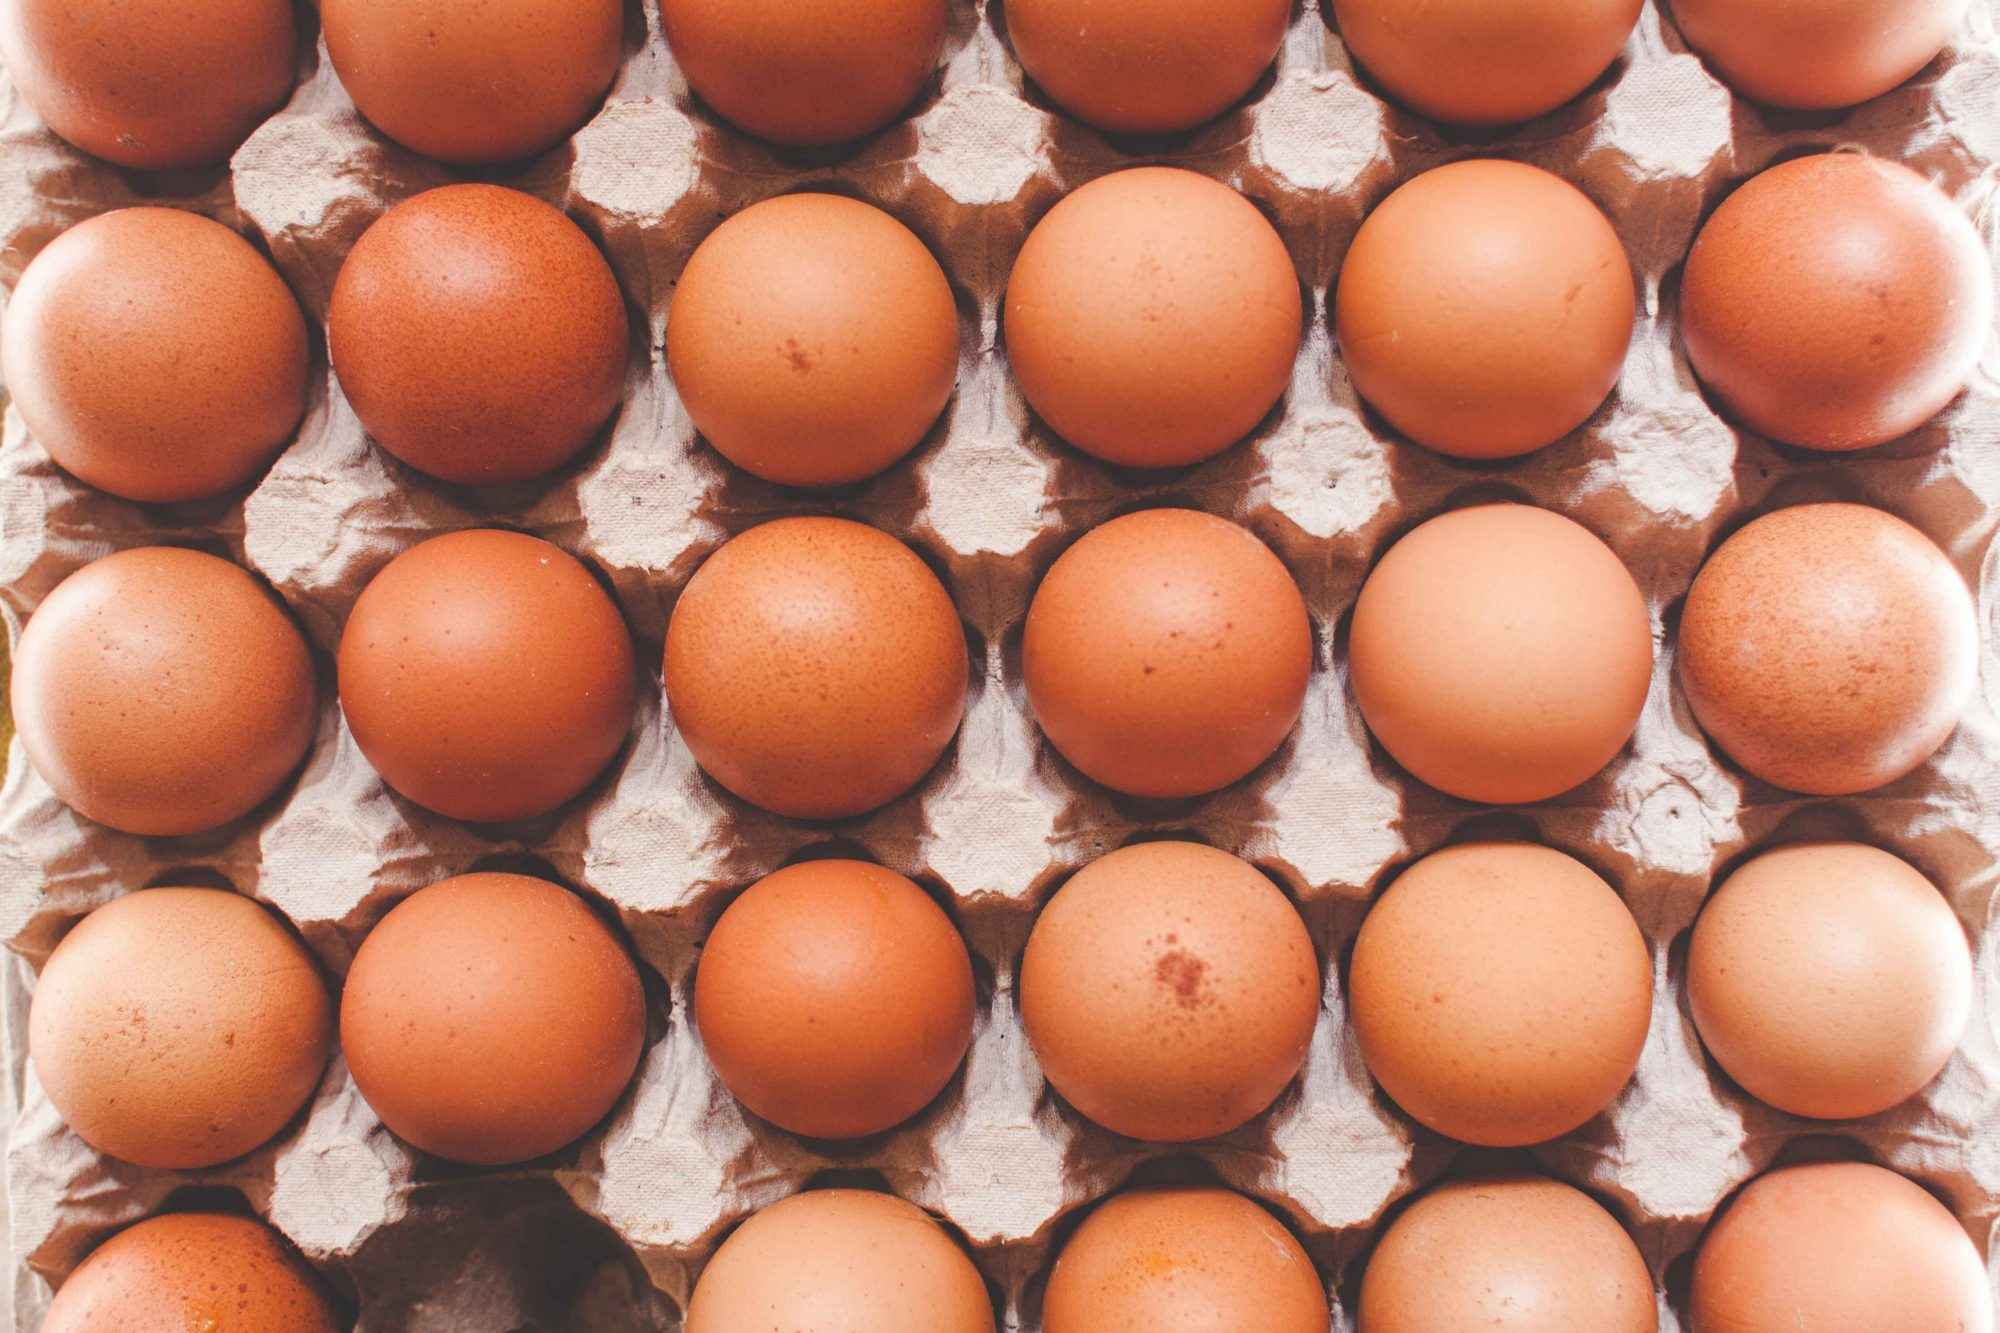 EC: Fake Chinese Eggs Are a Big Problem in India